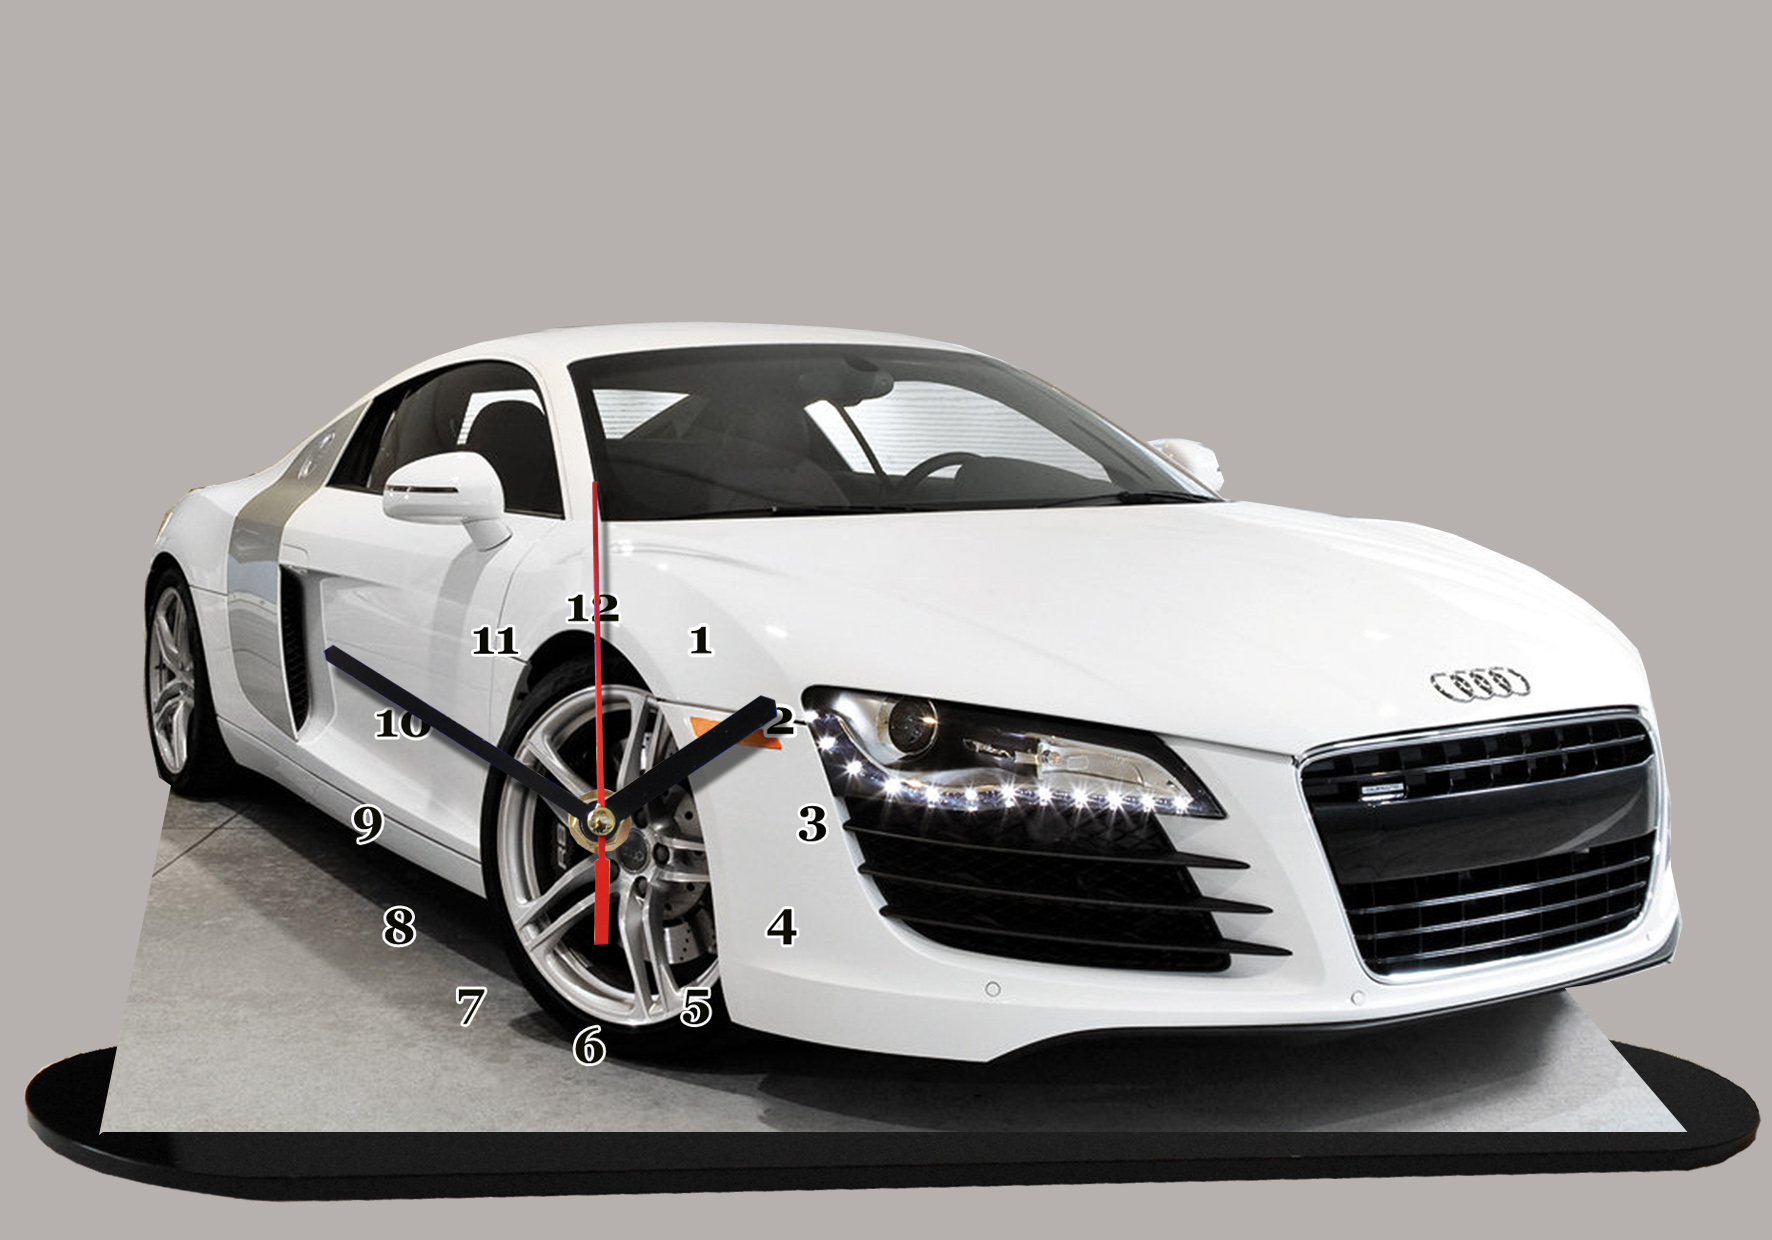 audi r8 blanche 08 en auto horloge miniature. Black Bedroom Furniture Sets. Home Design Ideas